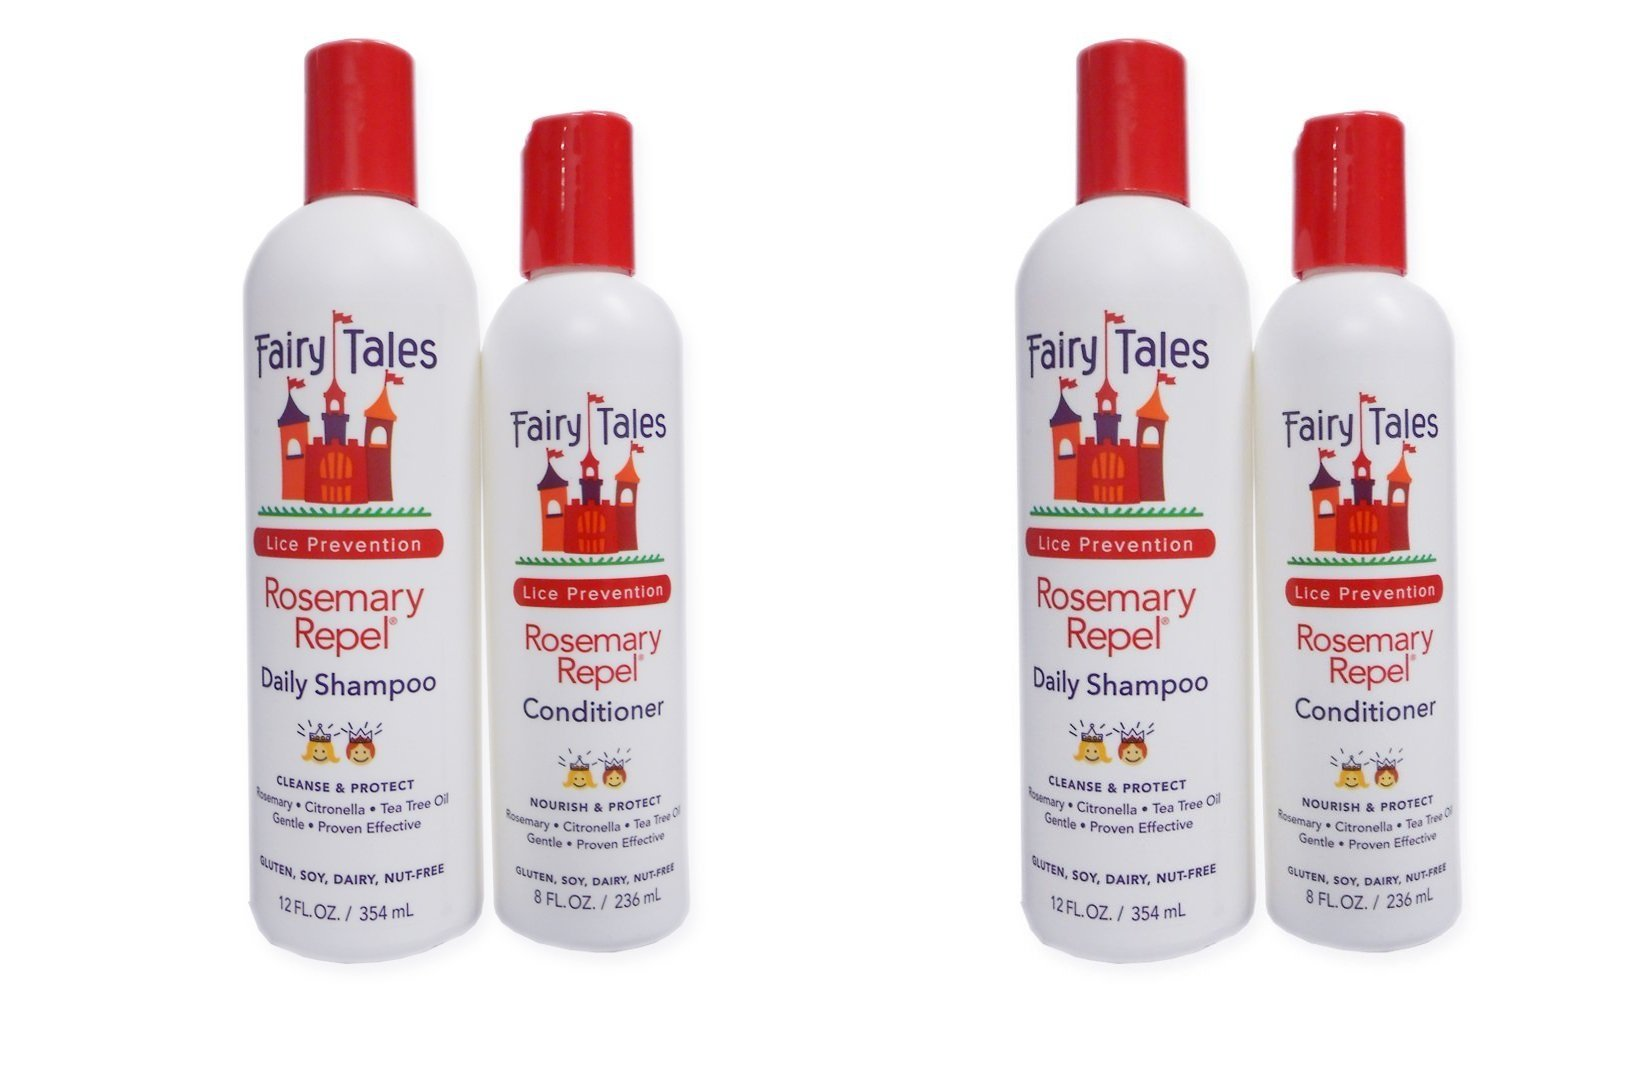 Fairy Tales Rosemary Repel Lice Prevention 12 Ounce Shampoo and 8 Ounce Conditioner Combo by Fairy Tales